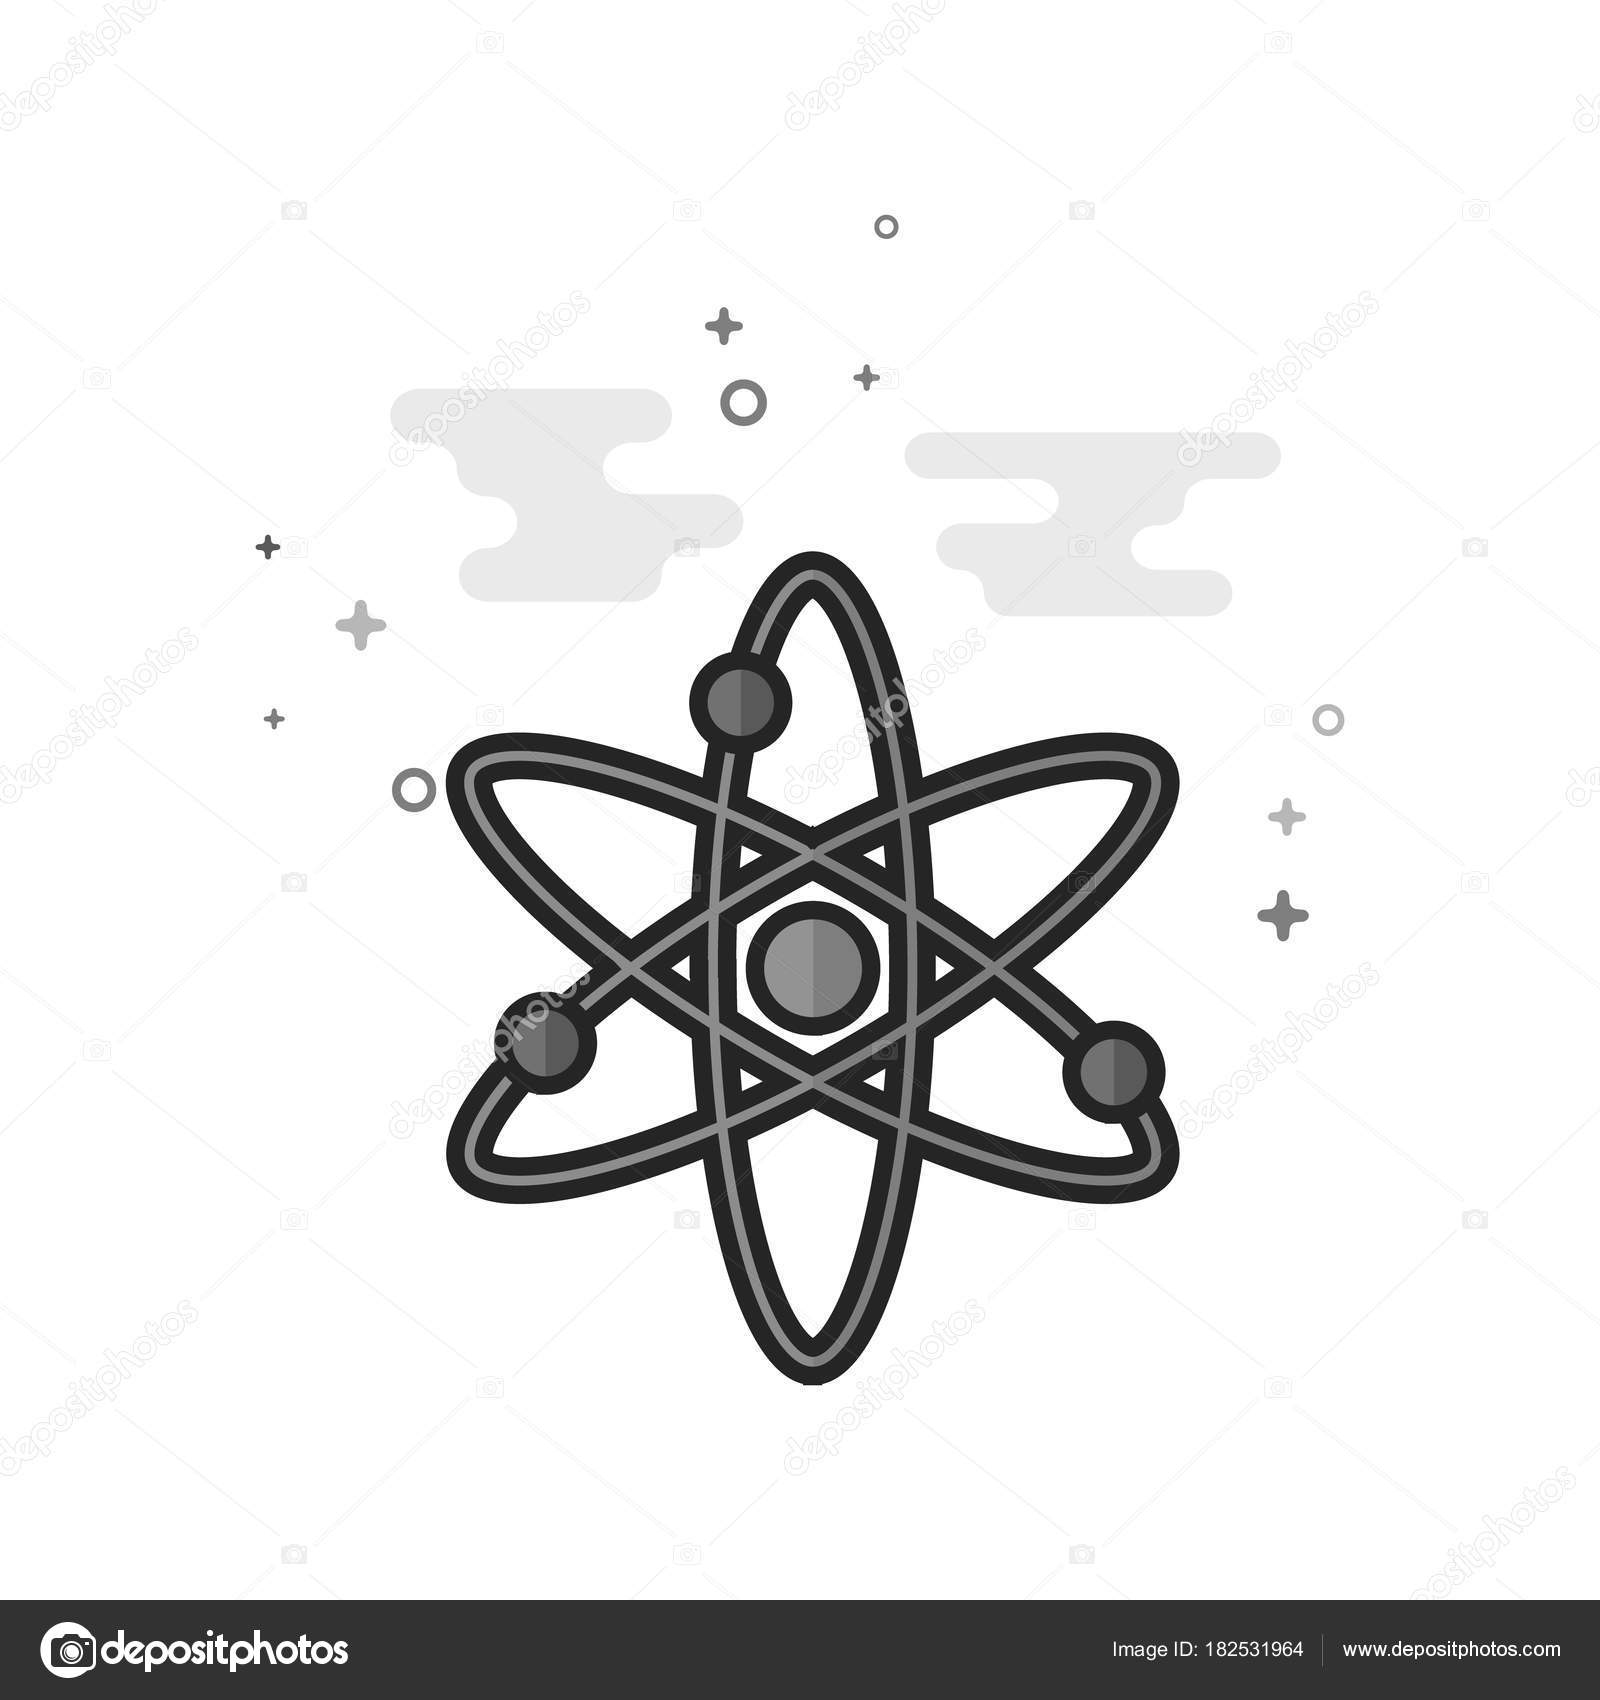 Atom structure icon flat outlined grayscale style vector atom structure icon flat outlined grayscale style vector illustration stock vector ccuart Images